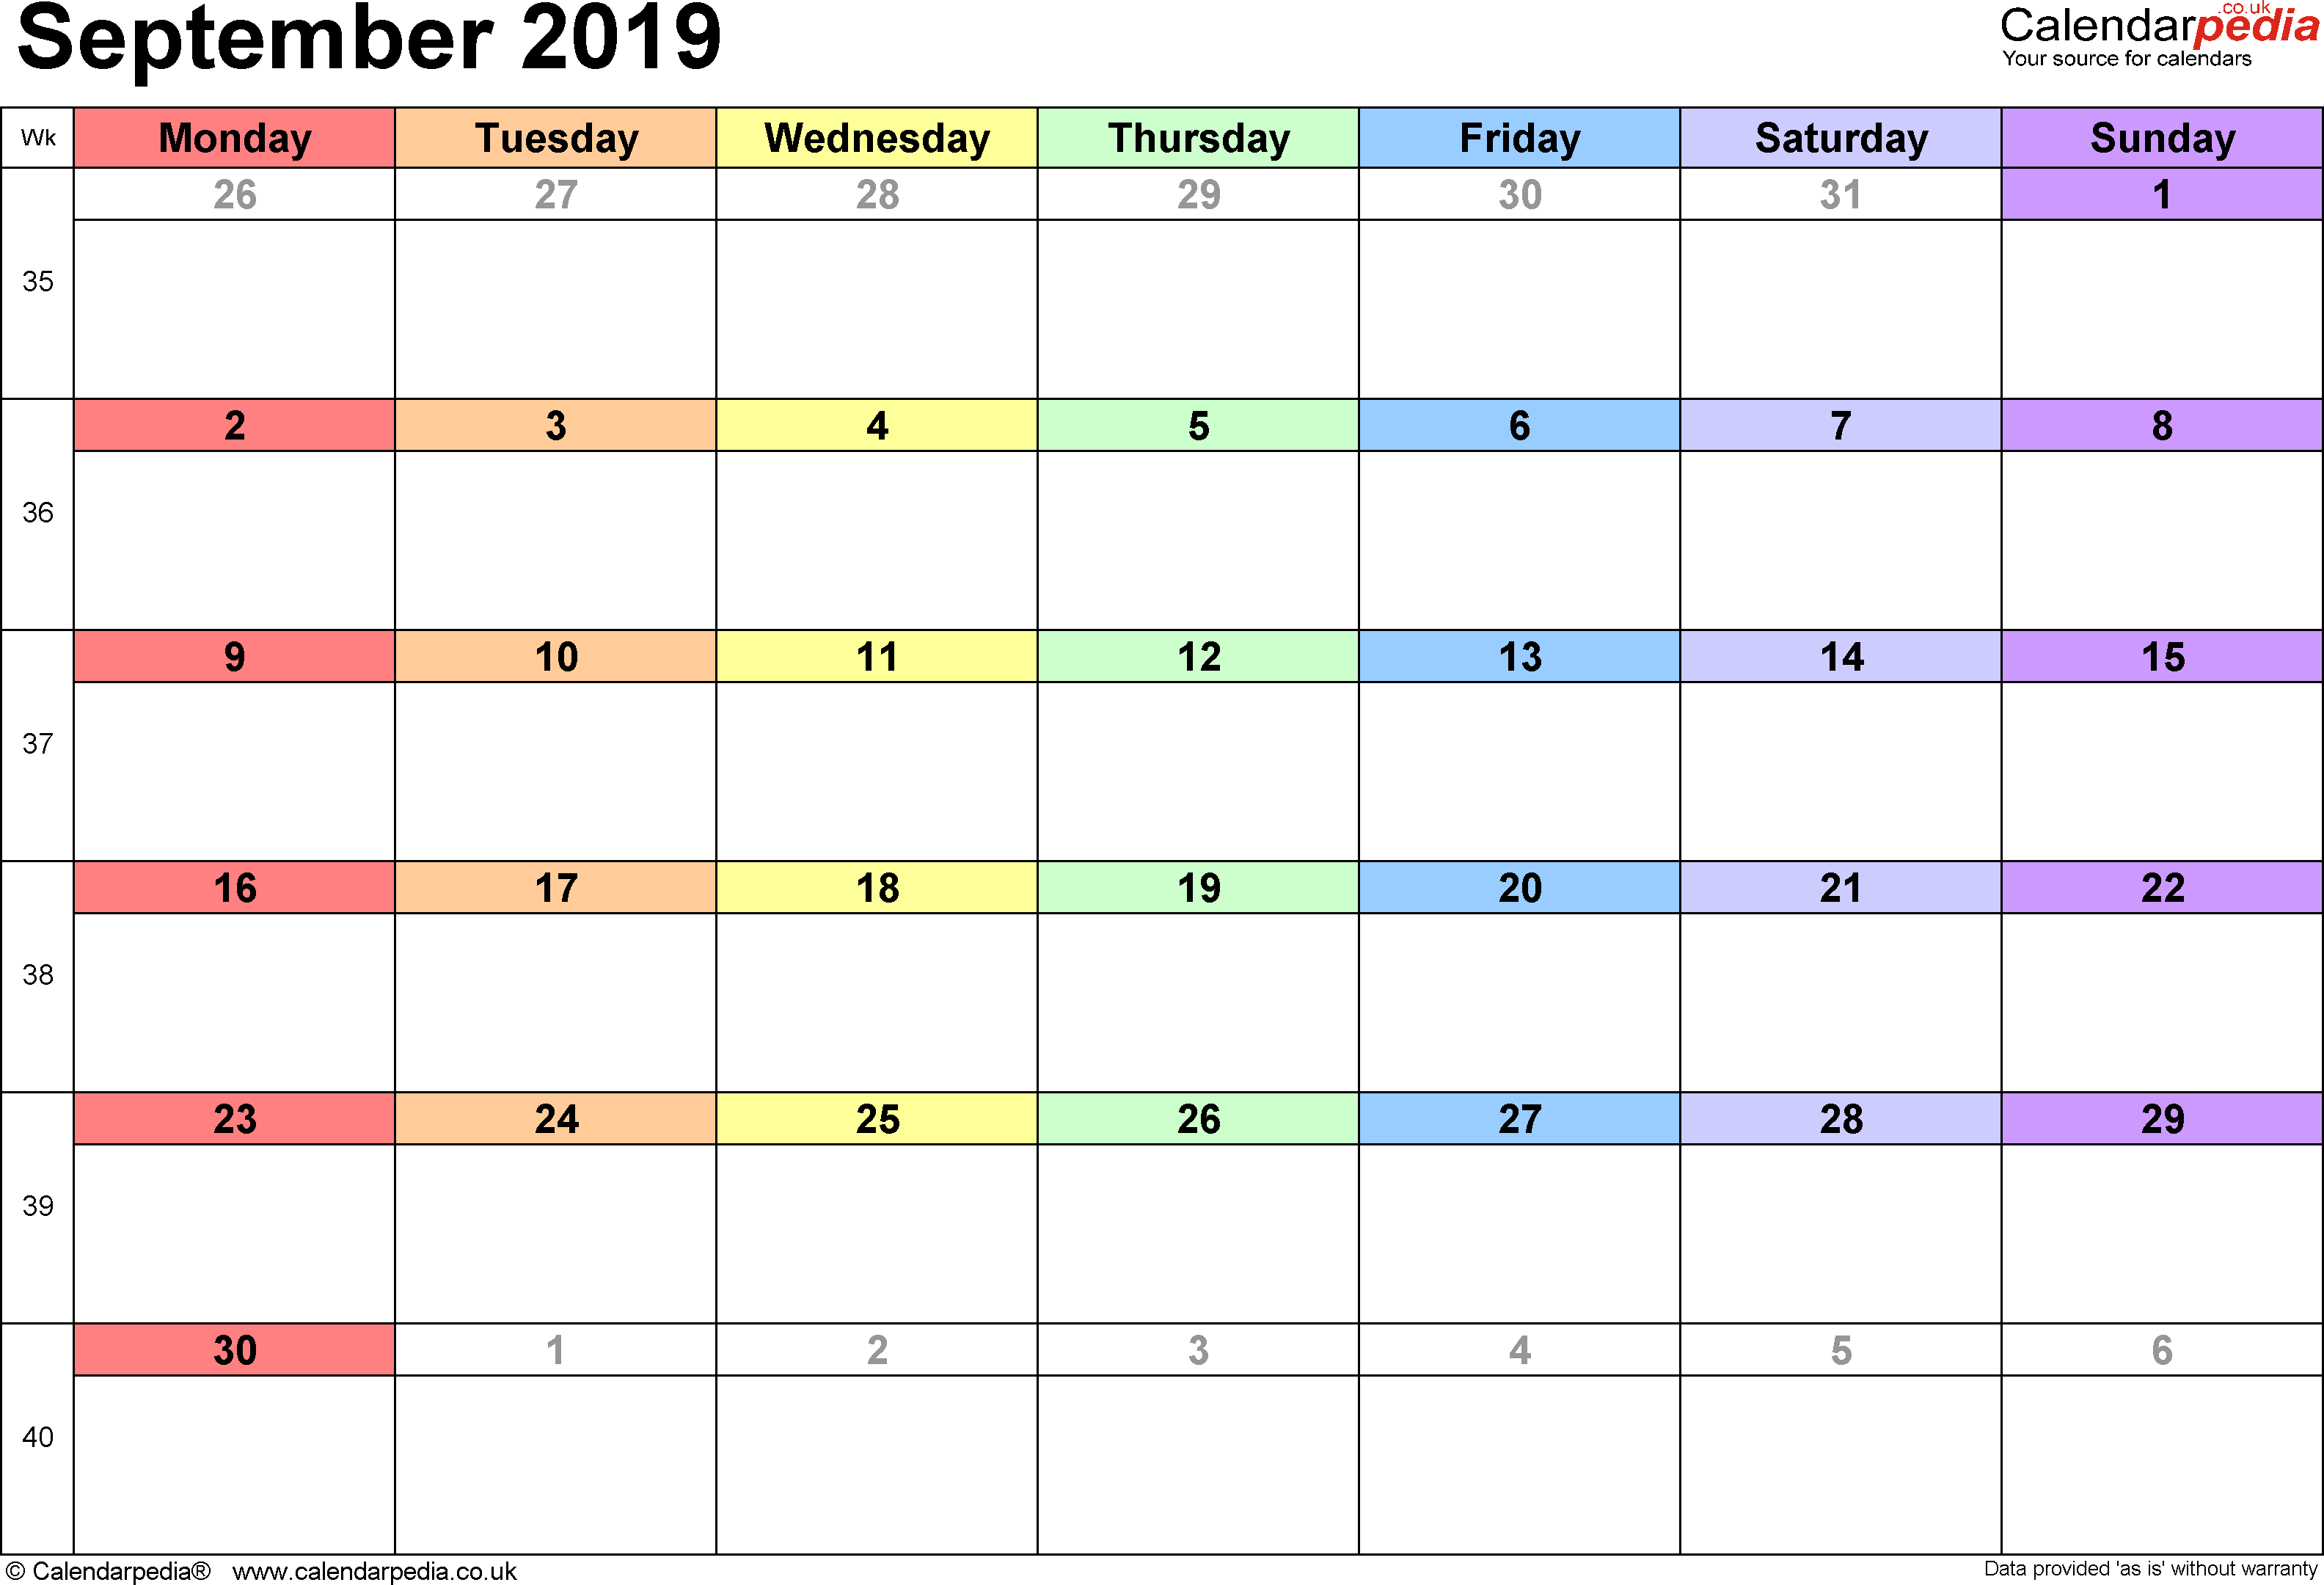 Calendar September 2019, landscape orientation, 1 page, with UK bank holidays and week numbers